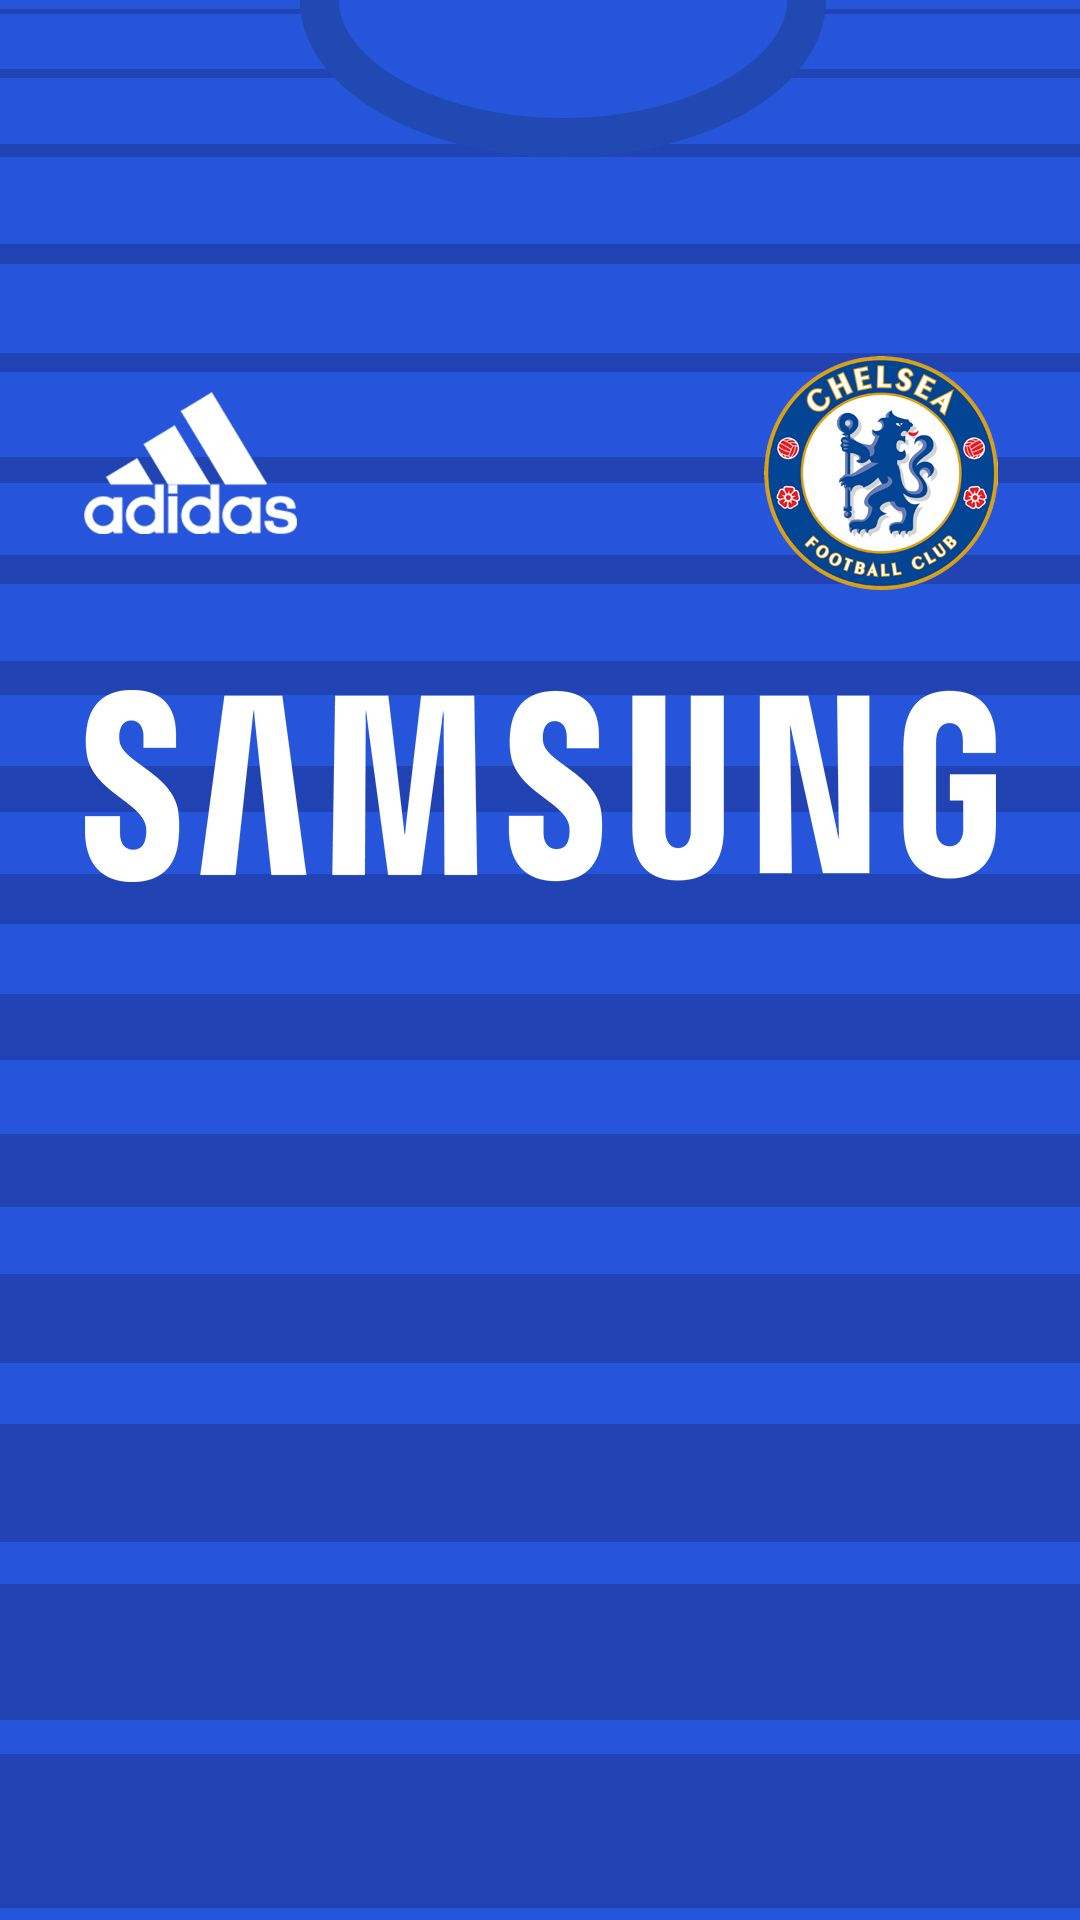 chelsea | sports | pinterest | chelsea, chelsea fc and soccer kits